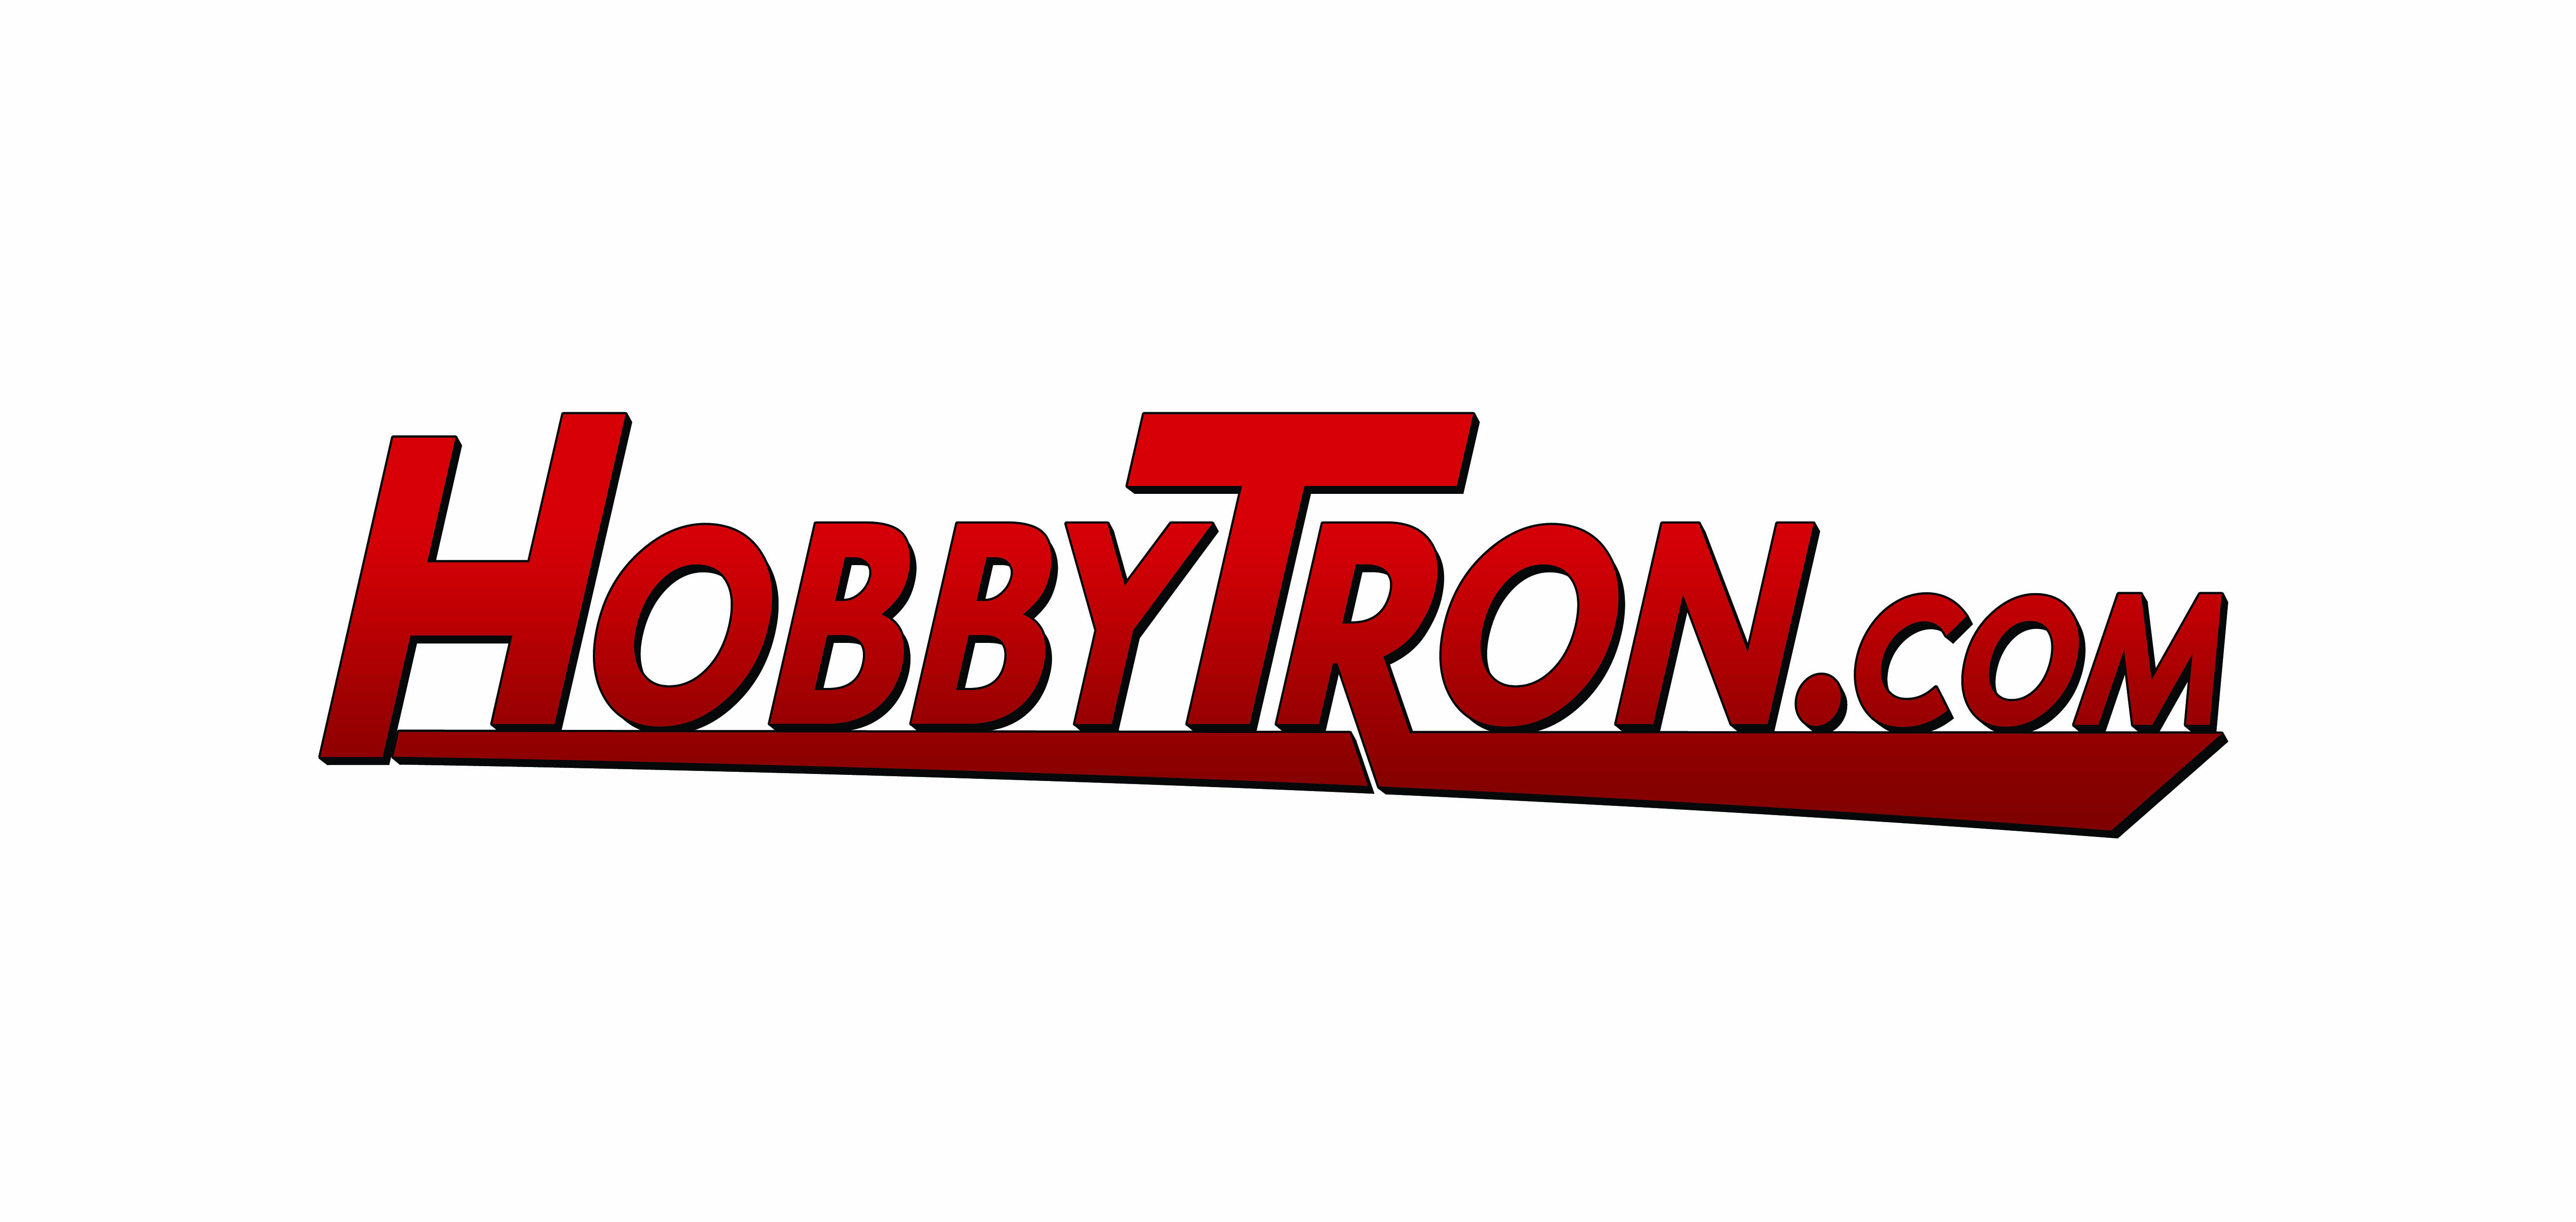 This is the Official HobbyTron.com Tumblr Account